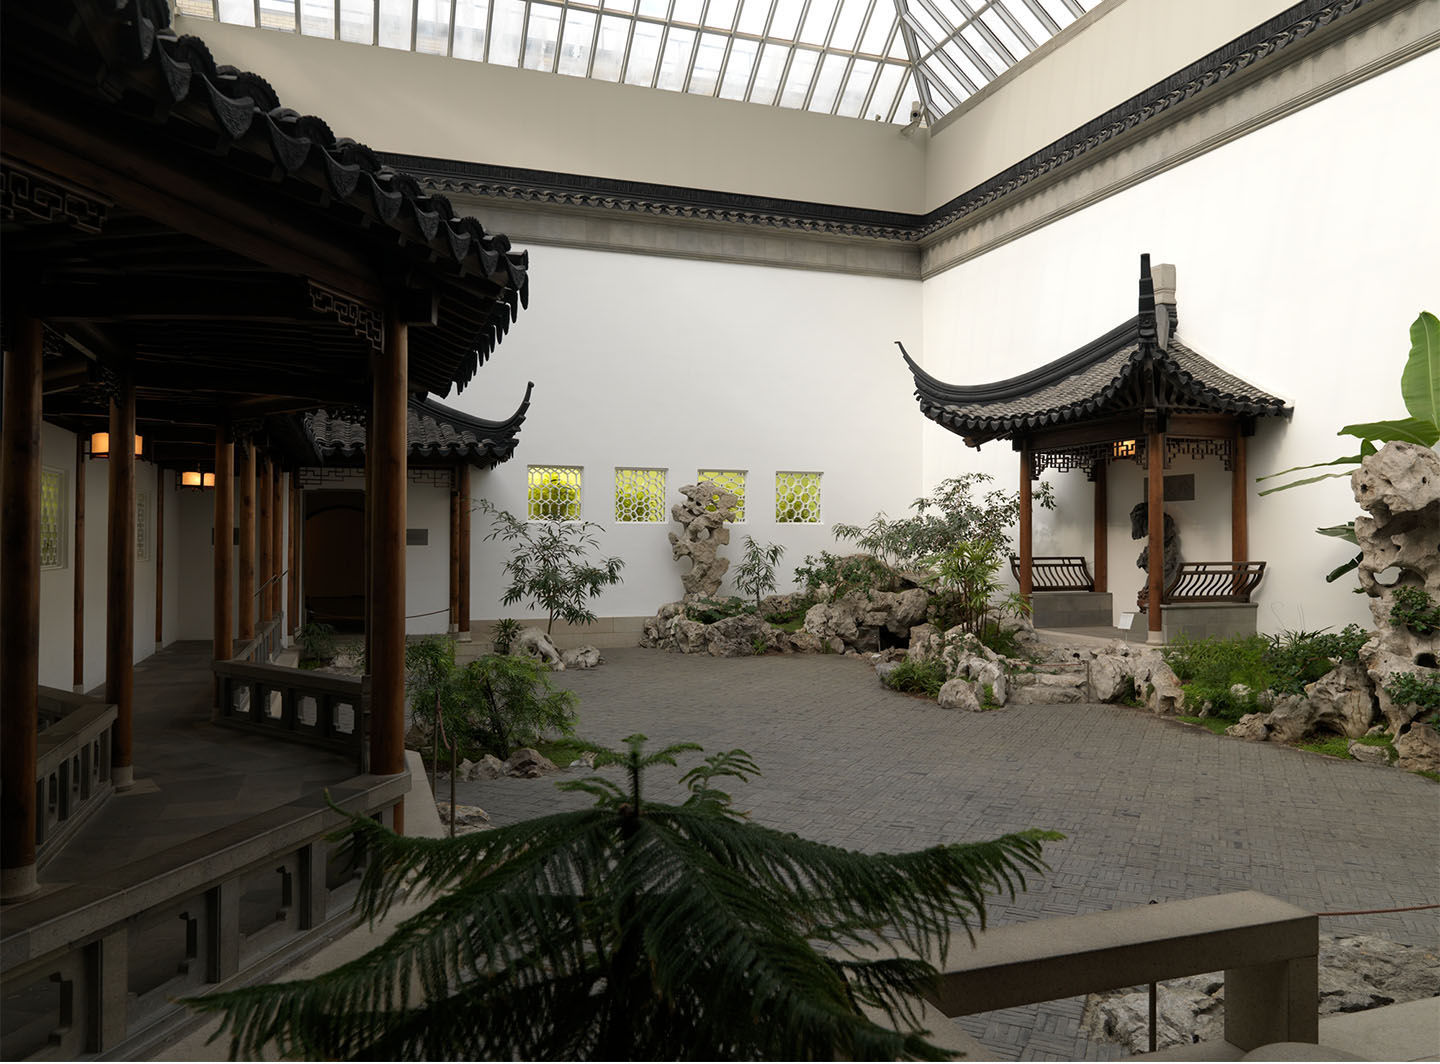 An Interior Courtyard With Pagodas Plantings Ornamental Rocks And A Fish Pond